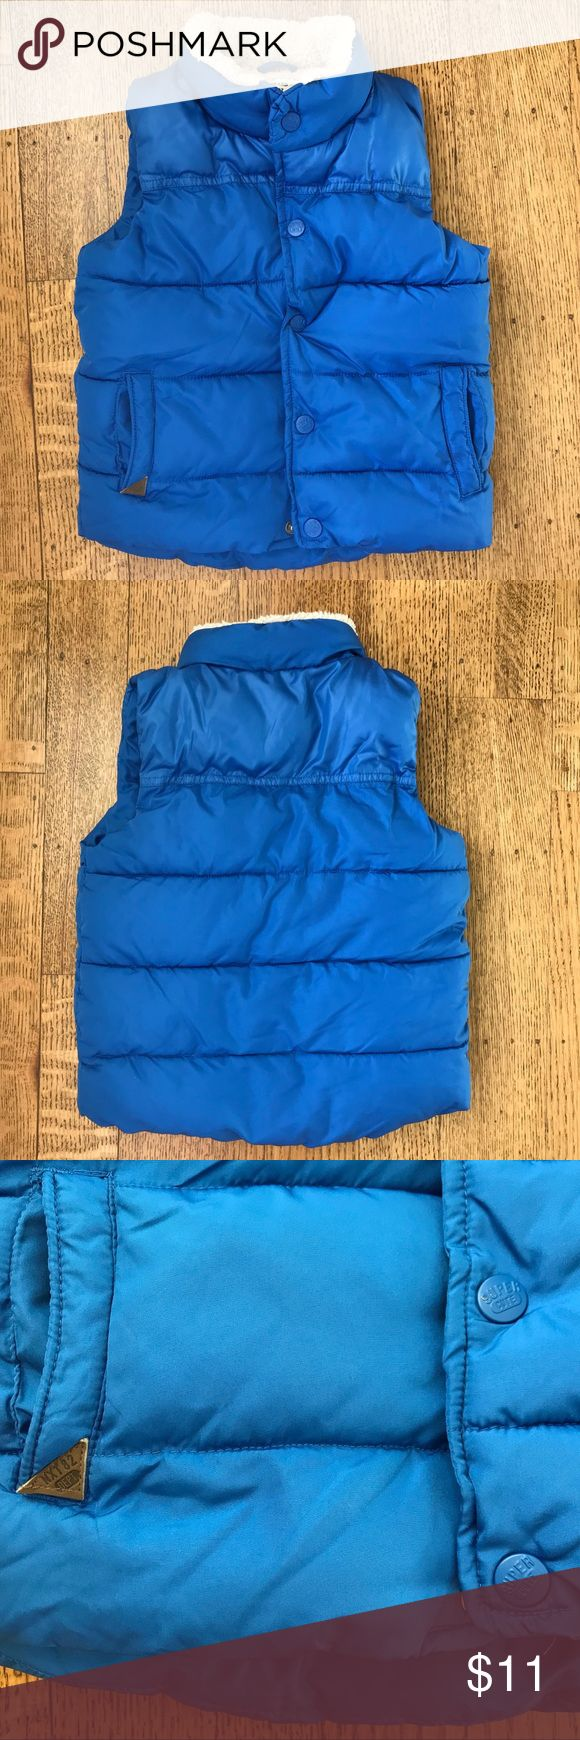 """NWOT Sz 2-3 Years Vest w Fleece Lining """"Next"""" brand (UK store comparable to Zara, H&M), gifted but didn't fit at right season. Cute deep/bright blue color, very cozy fleece, shearling-like lines entire inside. Front pockets also fleece lined. Never worn, tags removed. Smoke free pet free home. Next Jackets & Coats Vests"""